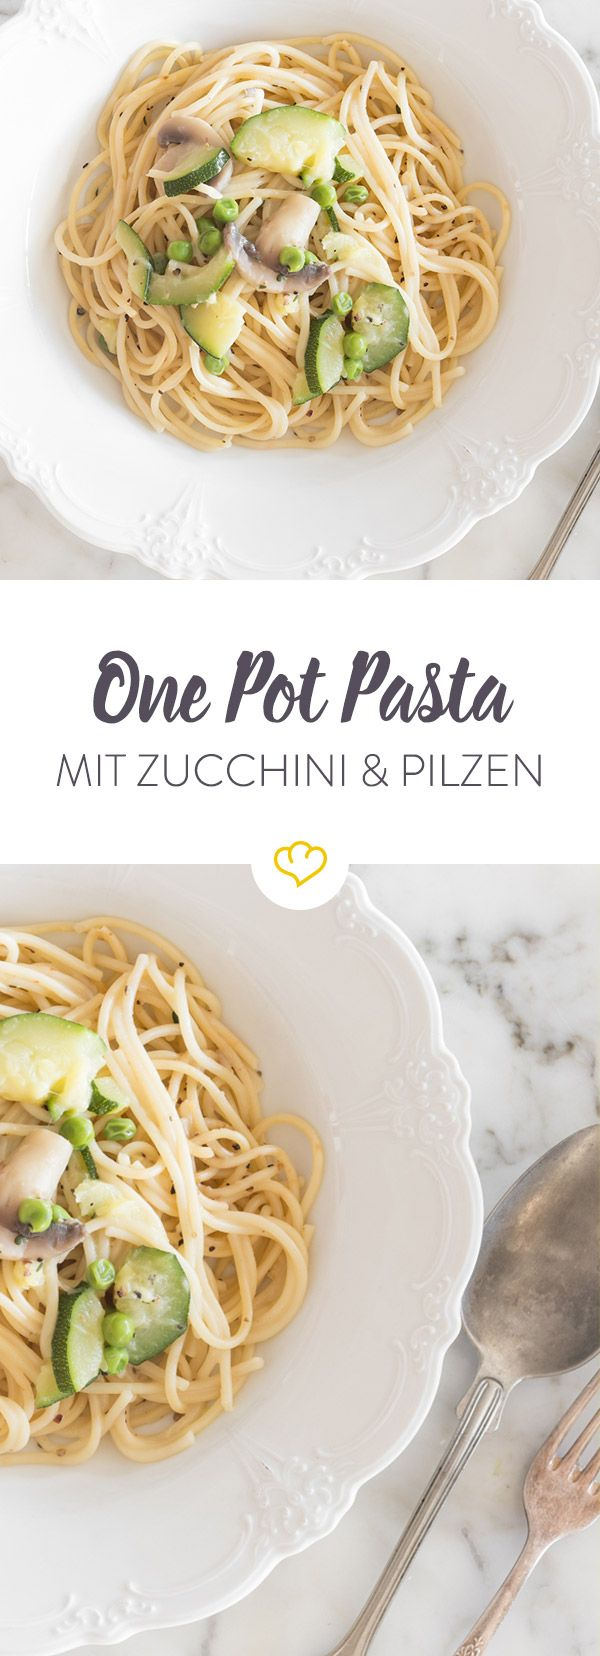 Photo of One pot pasta with zucchini, mushrooms and peas